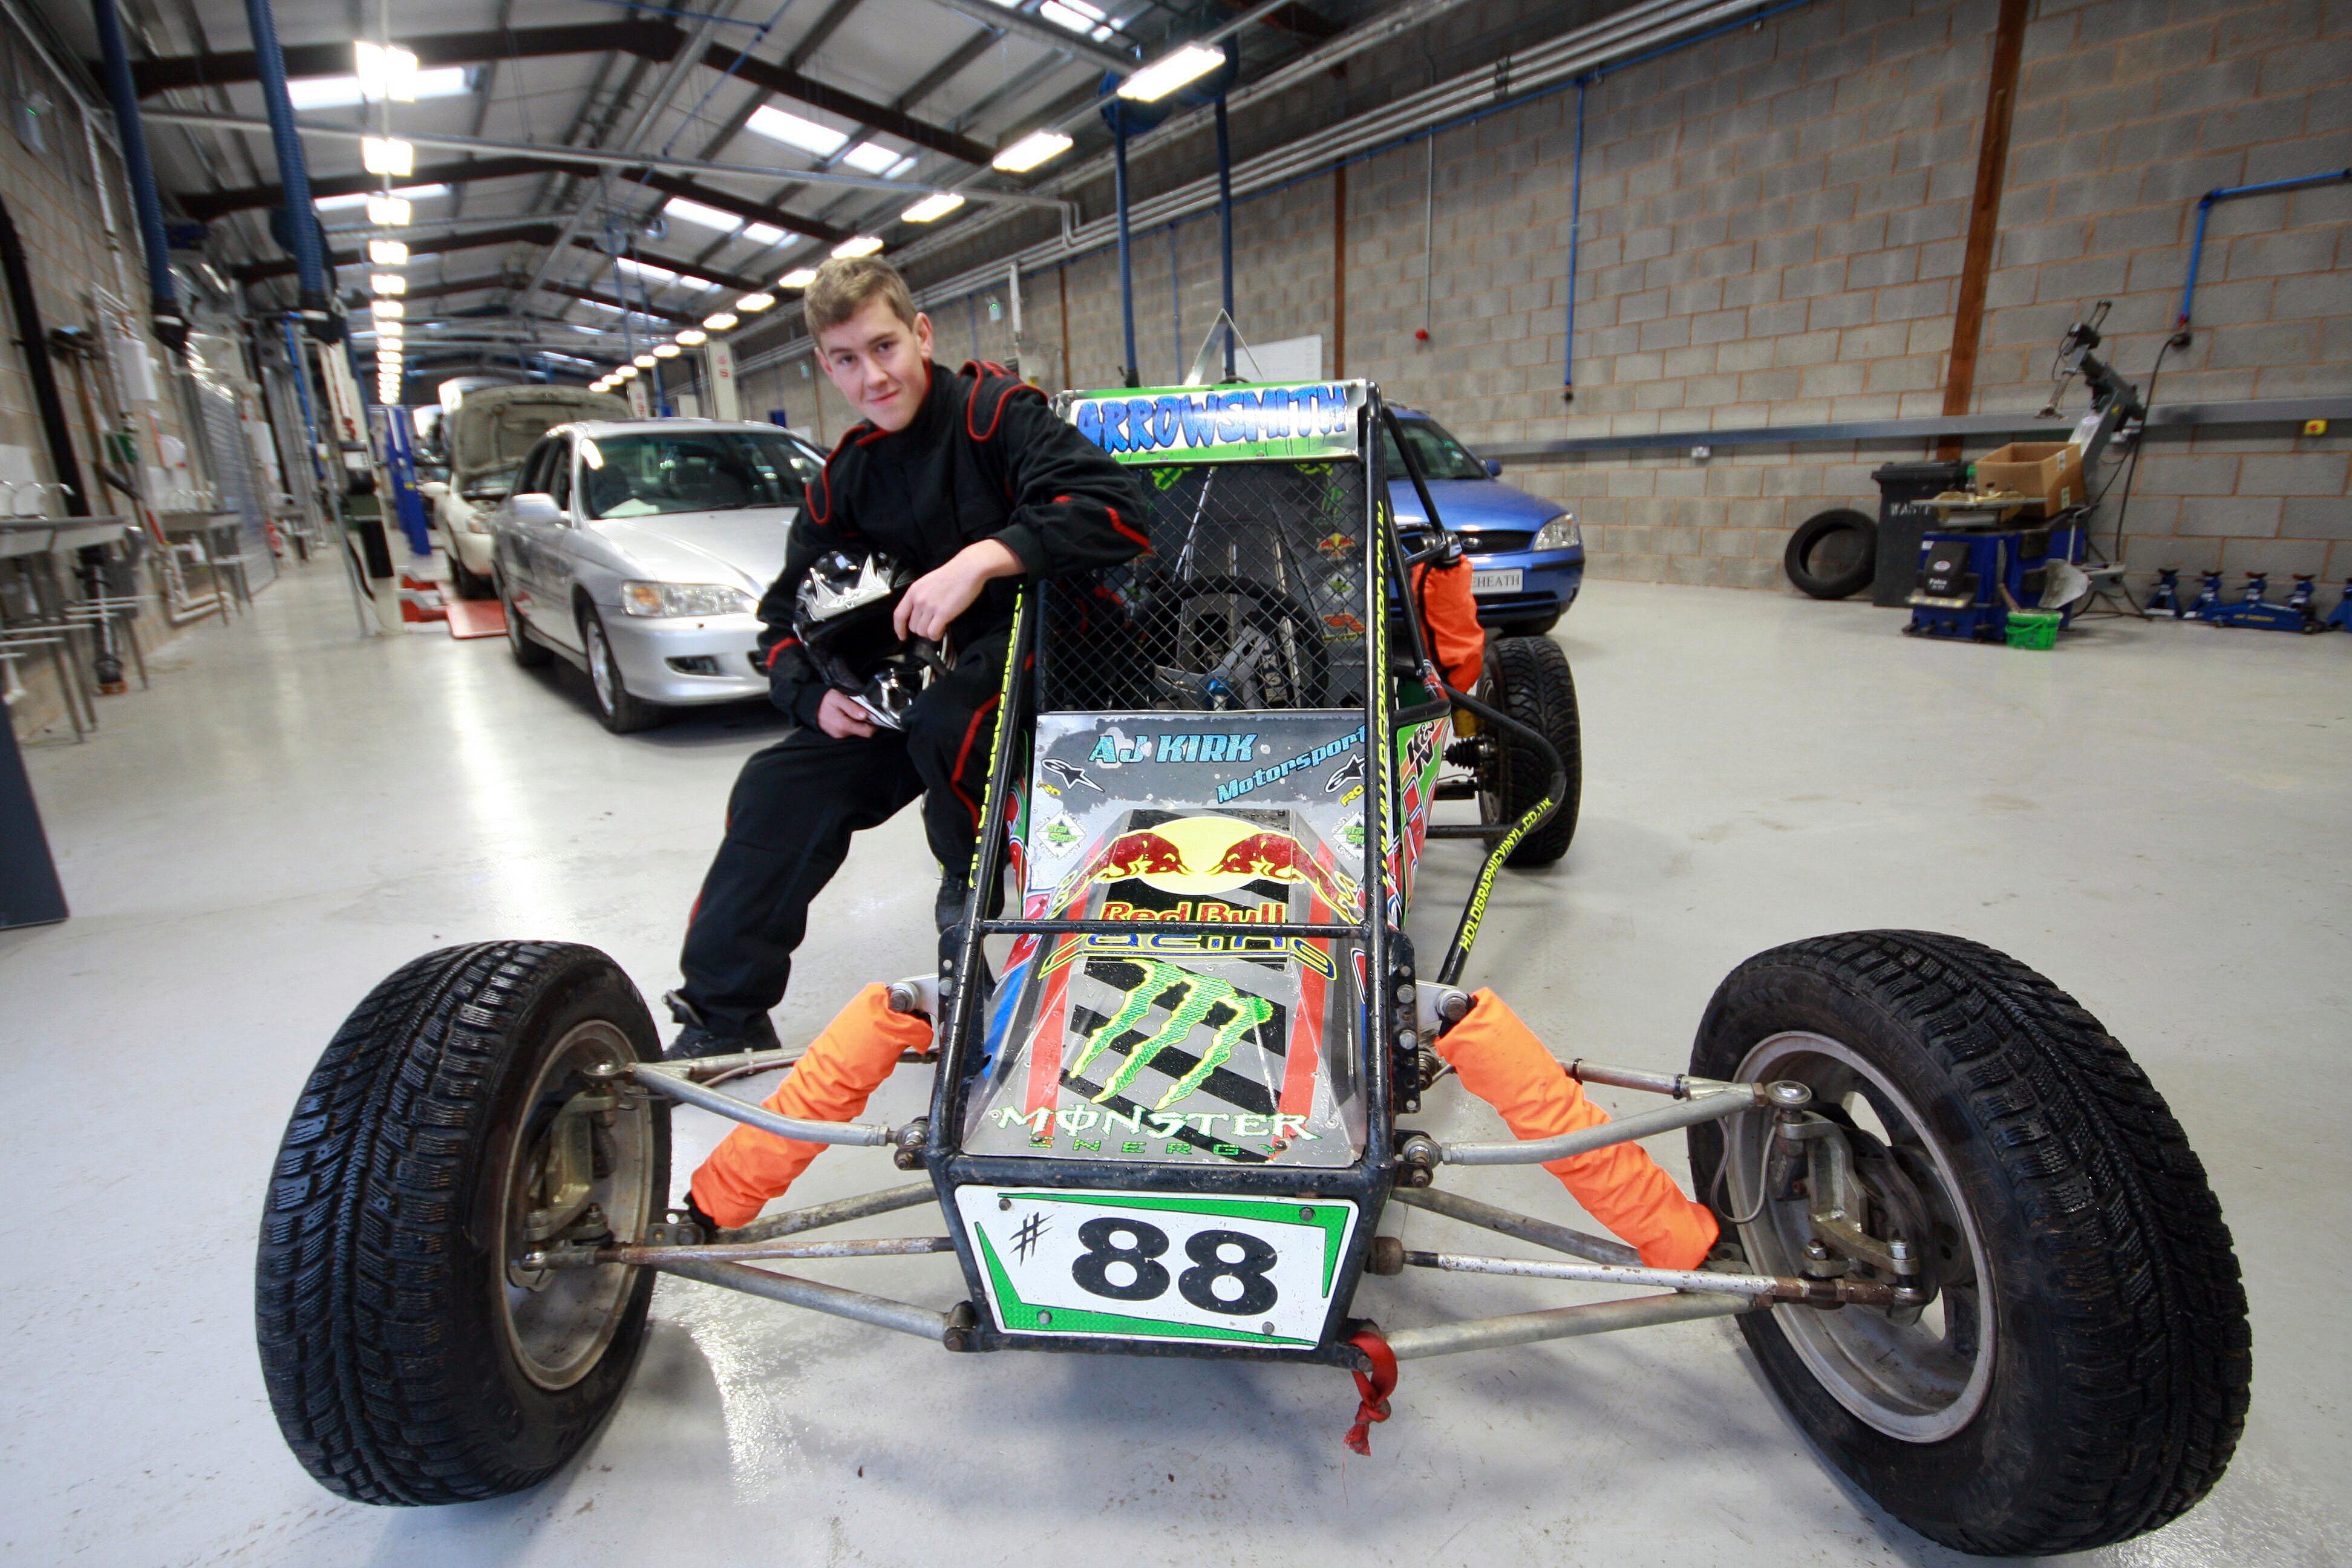 Grass track racer in pole position - Reaseheath College